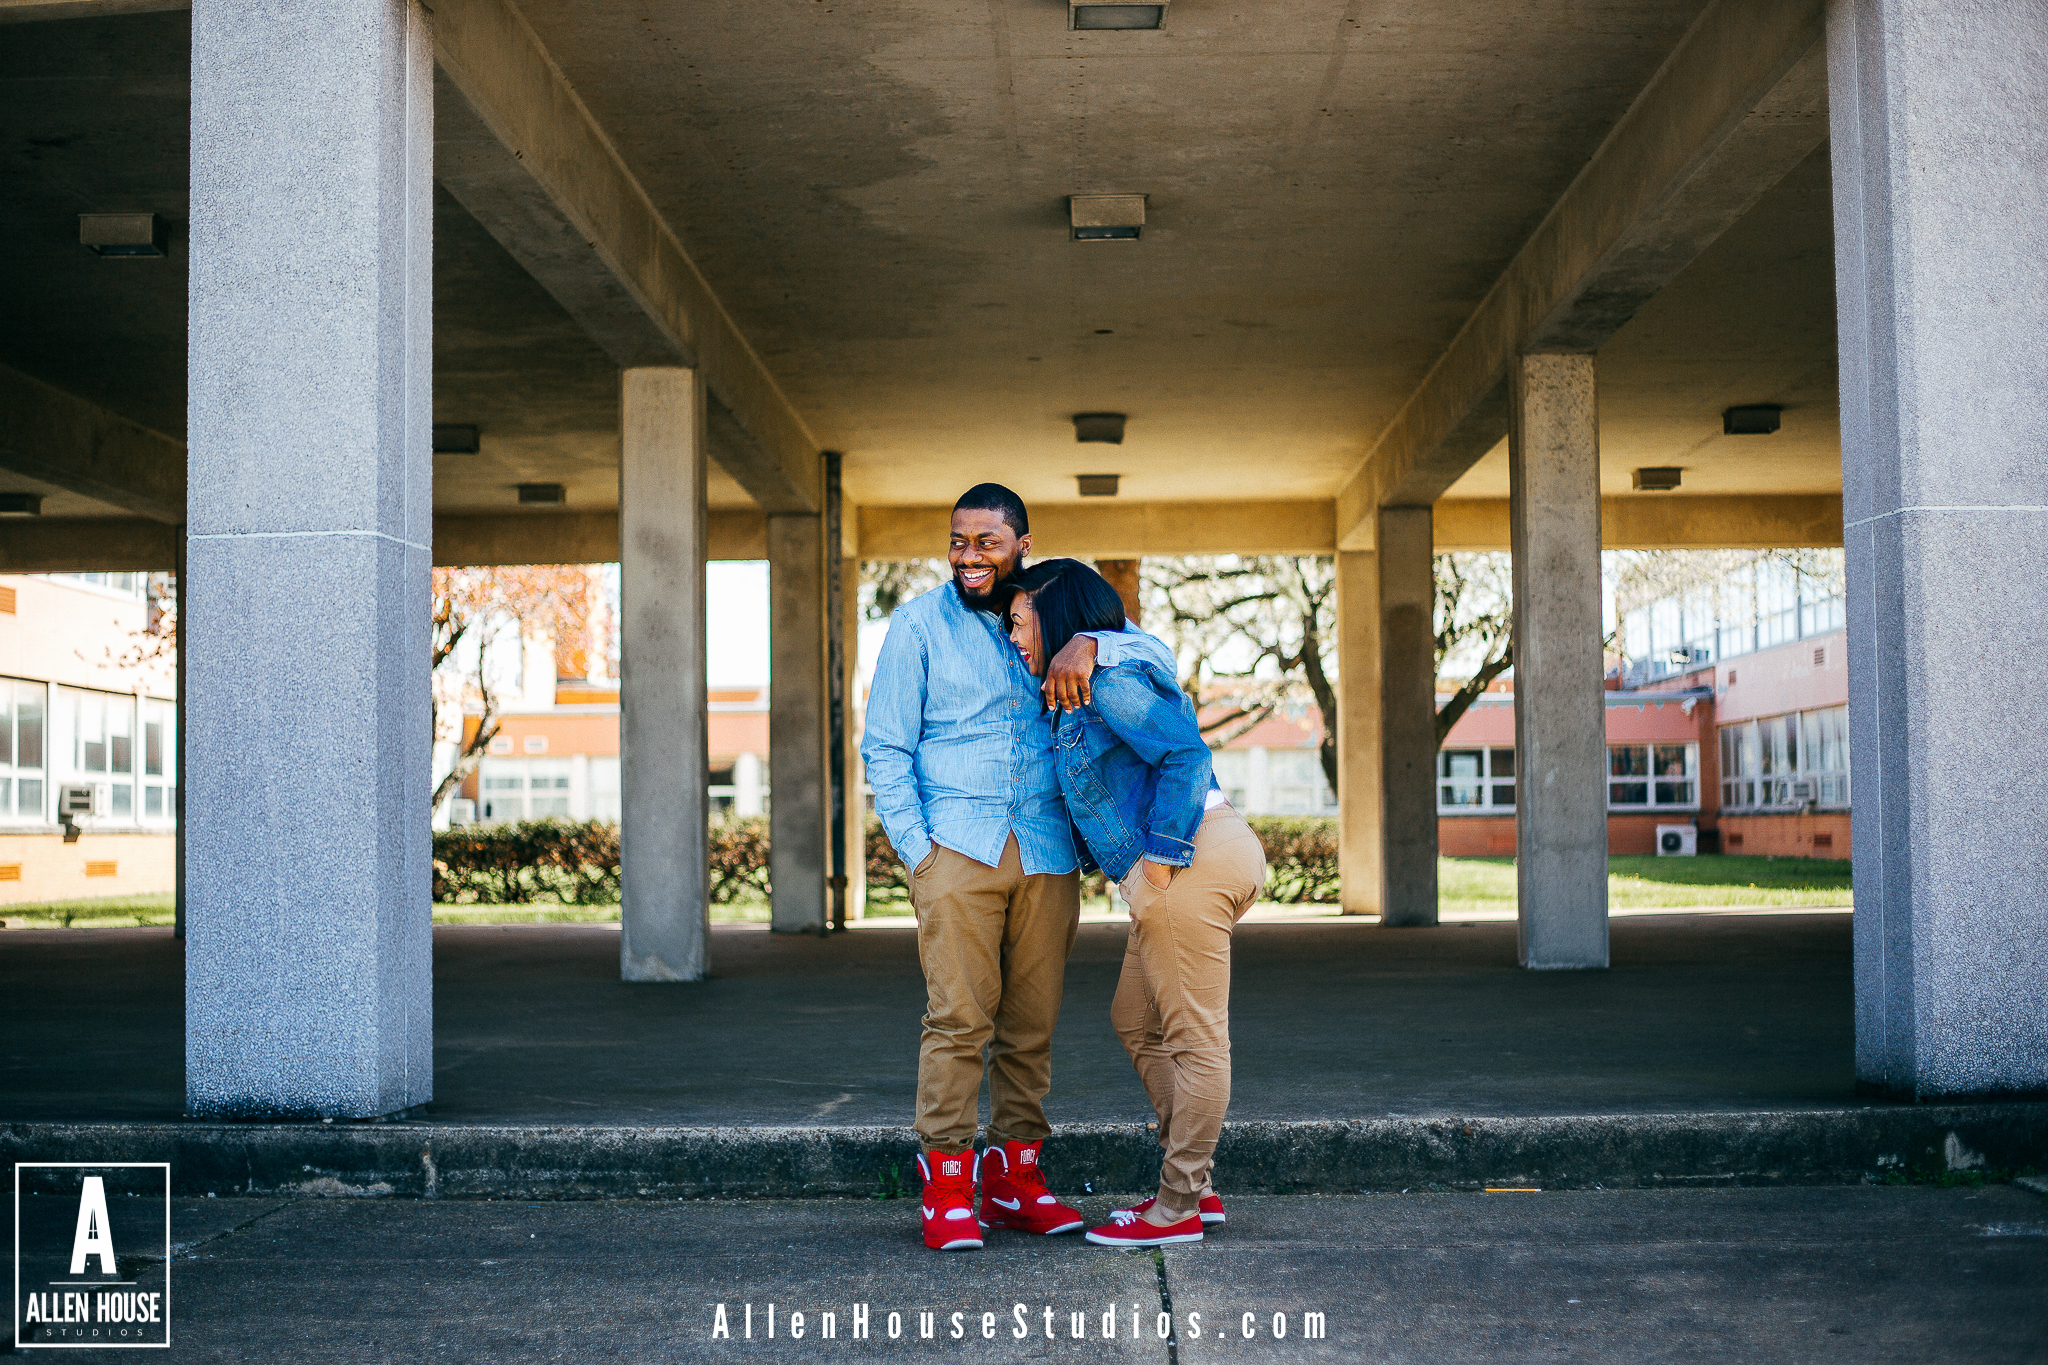 Time really does fly. Recently I had the pleasure of photographing J and Totiyana for their engagement session. The cool thing about capturing their photos is that I've known them both for just a little over 10 years now! We all went to the greatest high school in Delaware of course Christiana High. Back then I would've never thought that I'd be a photographer taking photos of weddings all over the world. We have all have a pretty decent relationship with one another so taking their photos was a piece of cake. I had the idea that since it's where they both met that it'd be a great idea to go back on Christiana High School grounds and do half of their session there. I'd say we did more laughing and talking more about old school memories than we actually did shooting. Once we left Christiana they changed outfits and then we headed to Philadelphia to finish the session. I had a great time and you can tell that they love to laugh by looking at their photos.